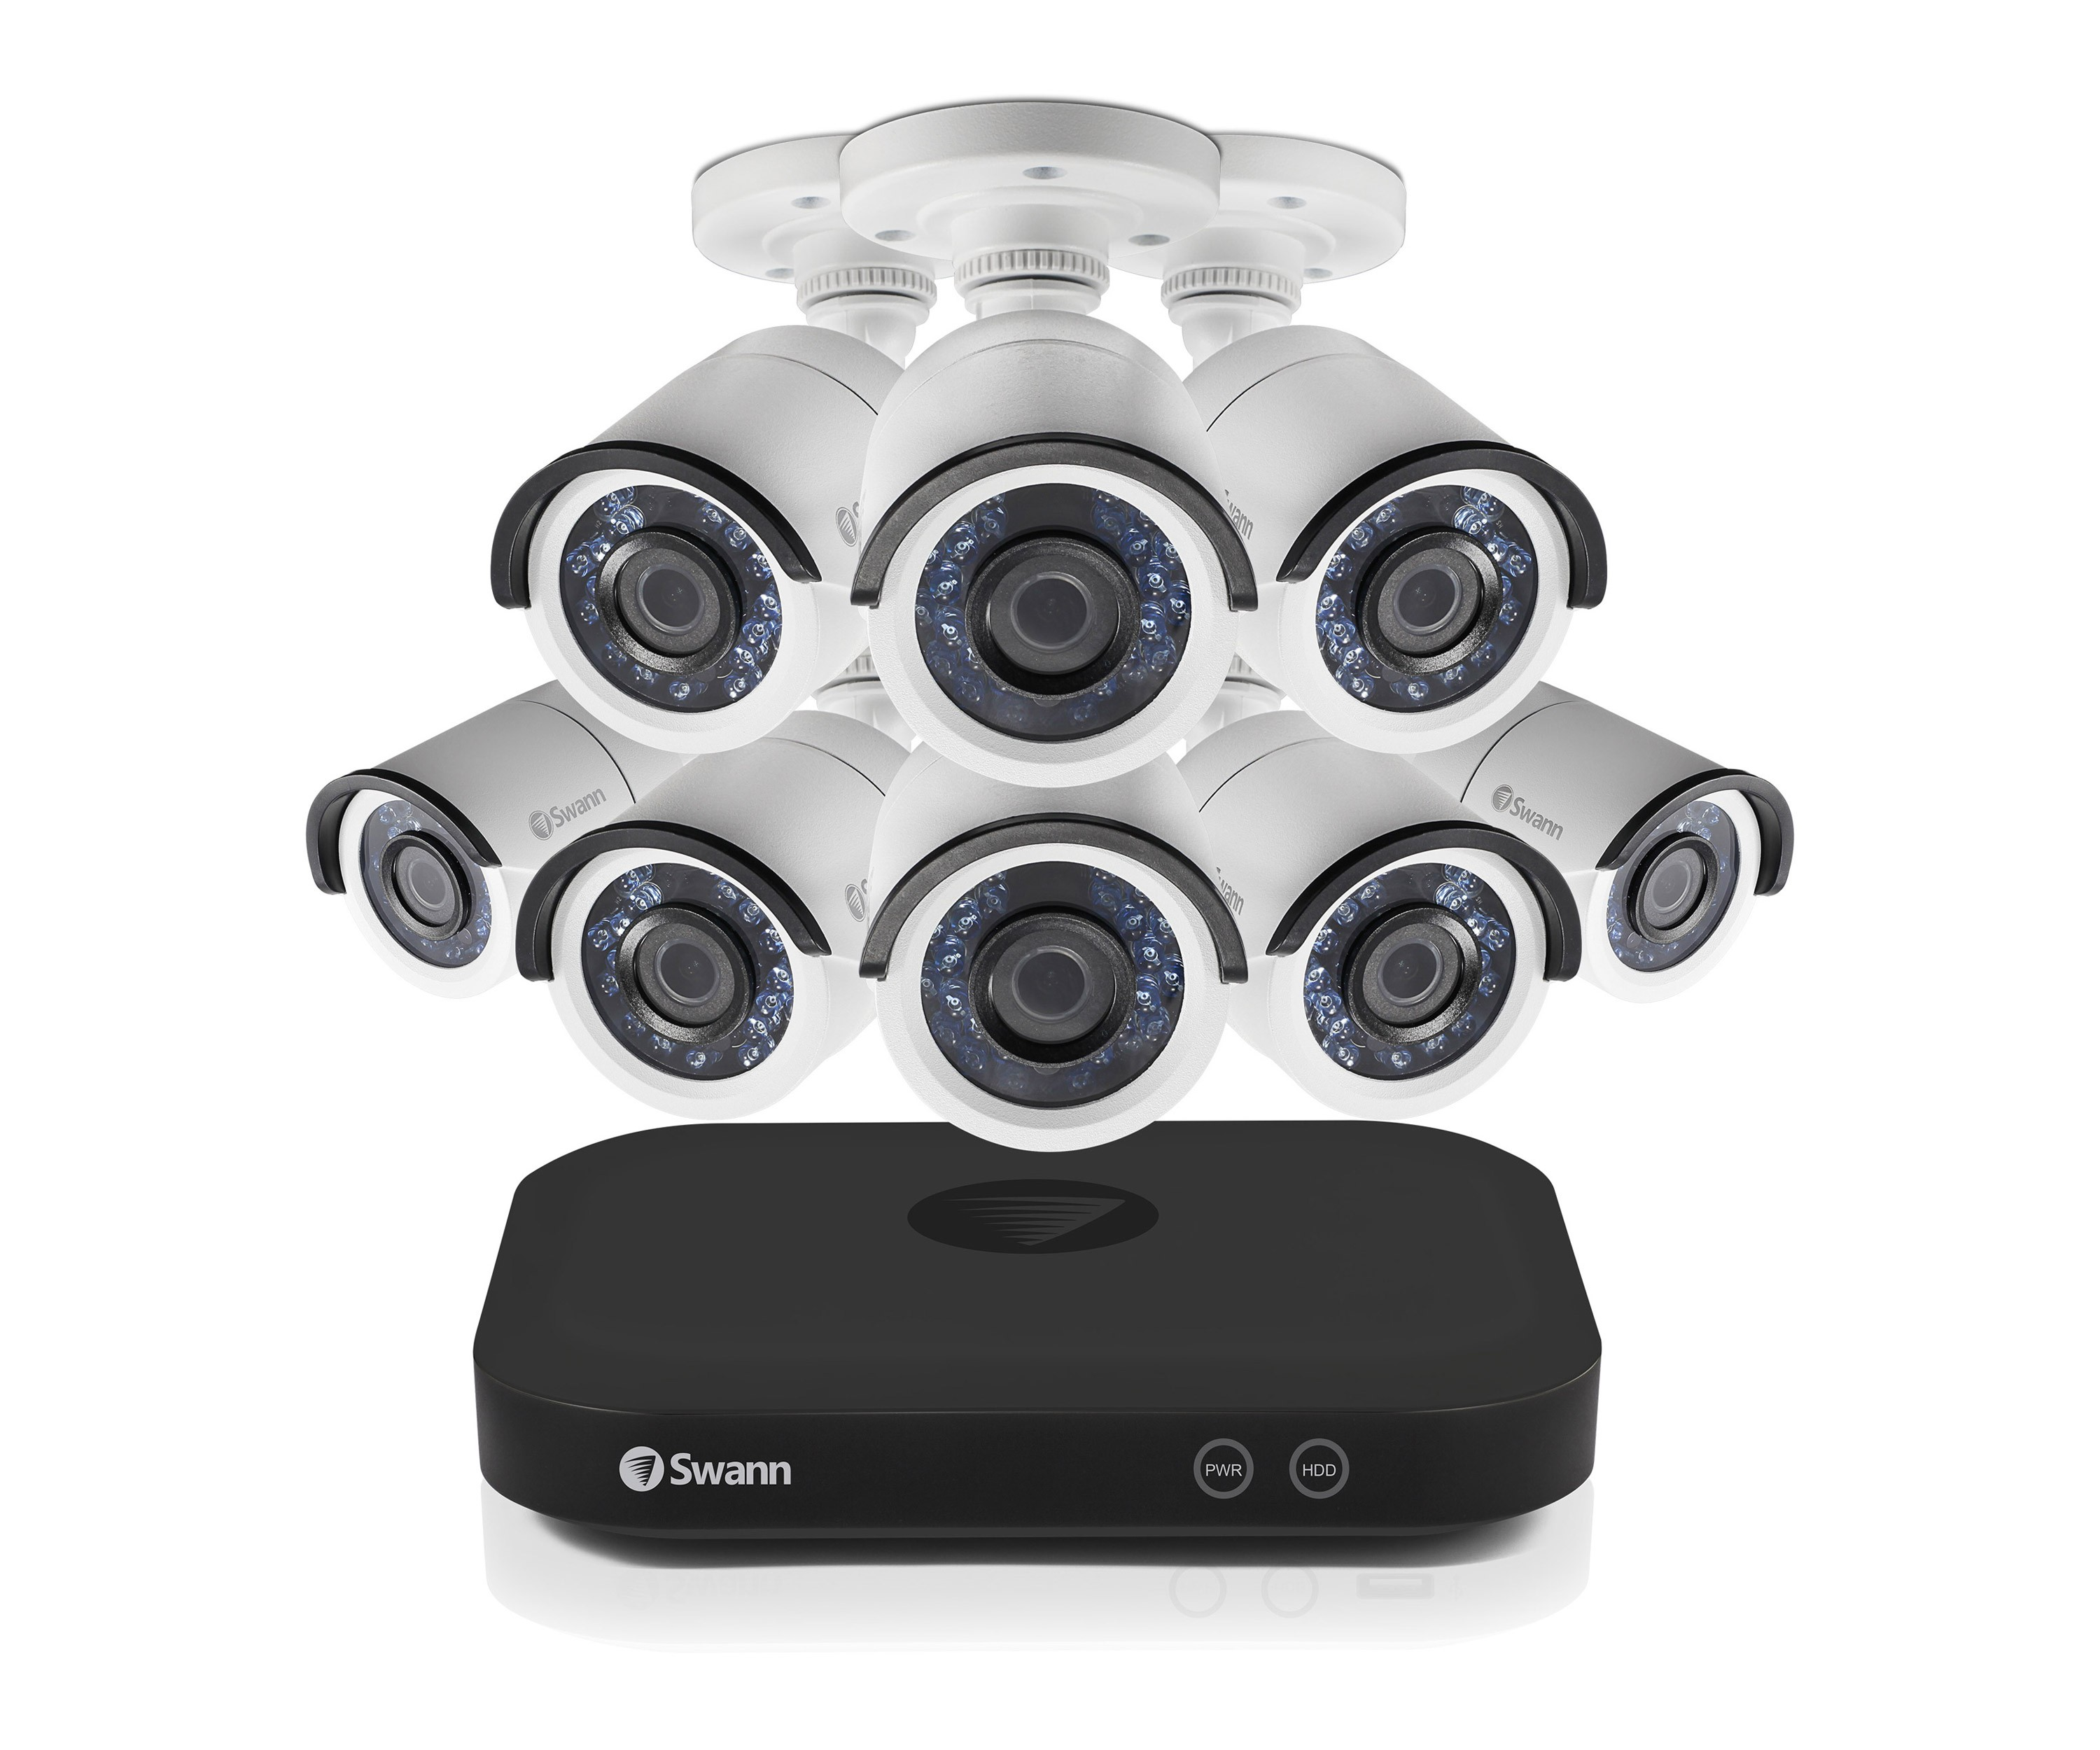 SWDVK-849008 Swann 8 Channel Security System: 5MP Super HD DVR with 2TB HDD & 8 x 5MP Bullet Cameras -